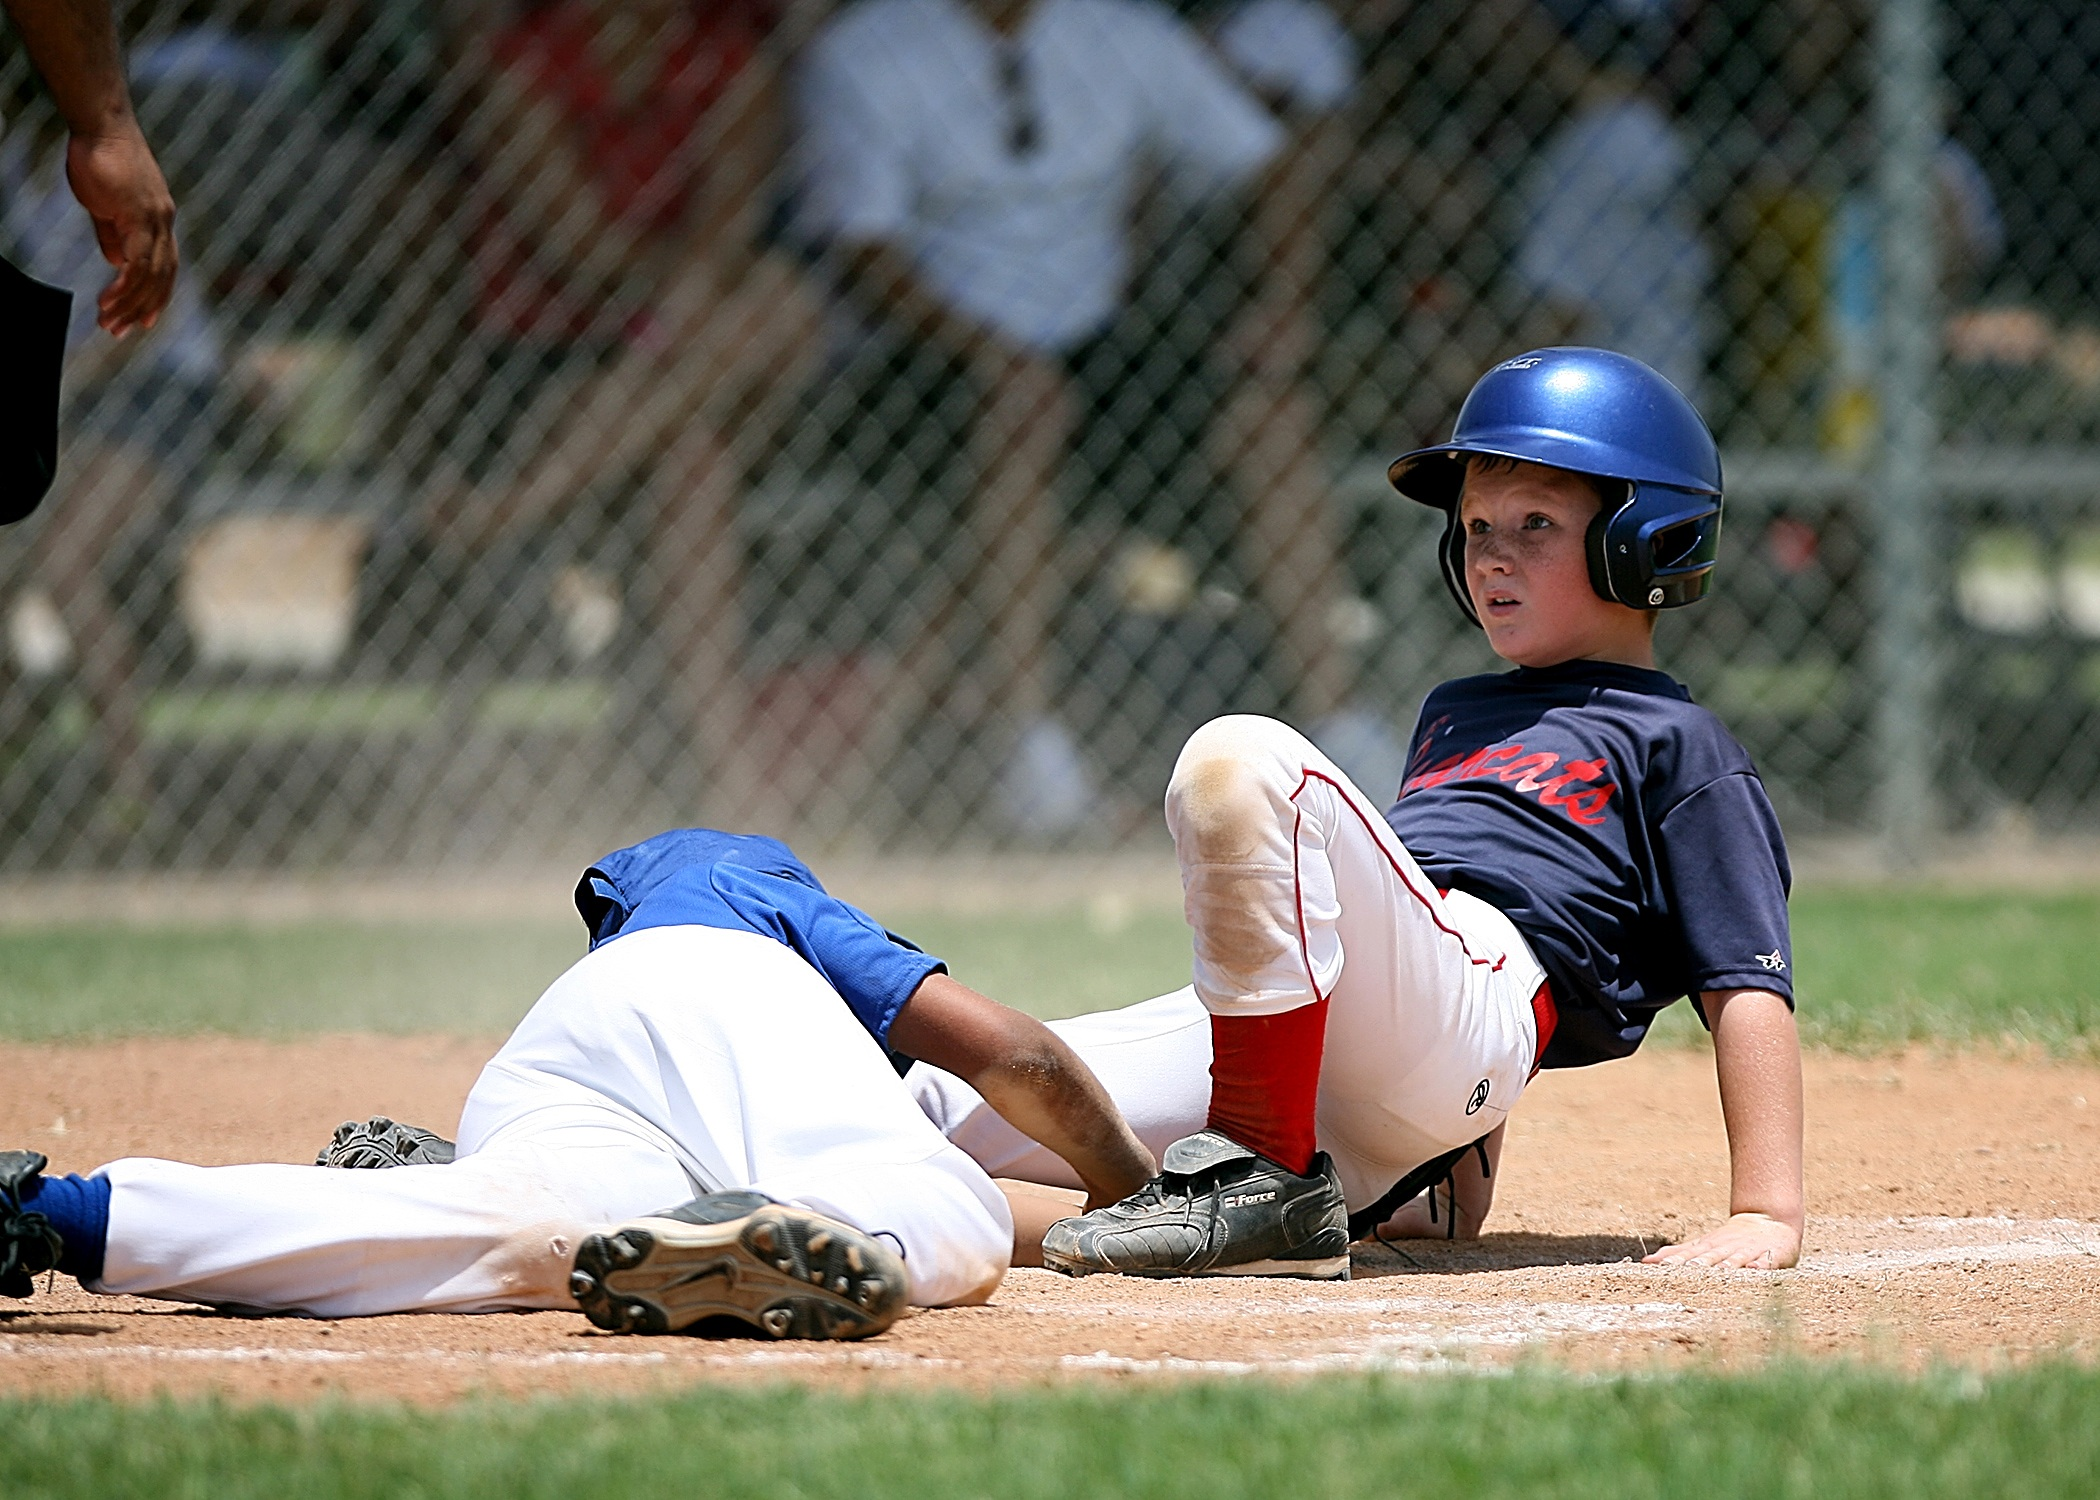 Action athletes audience barb wires